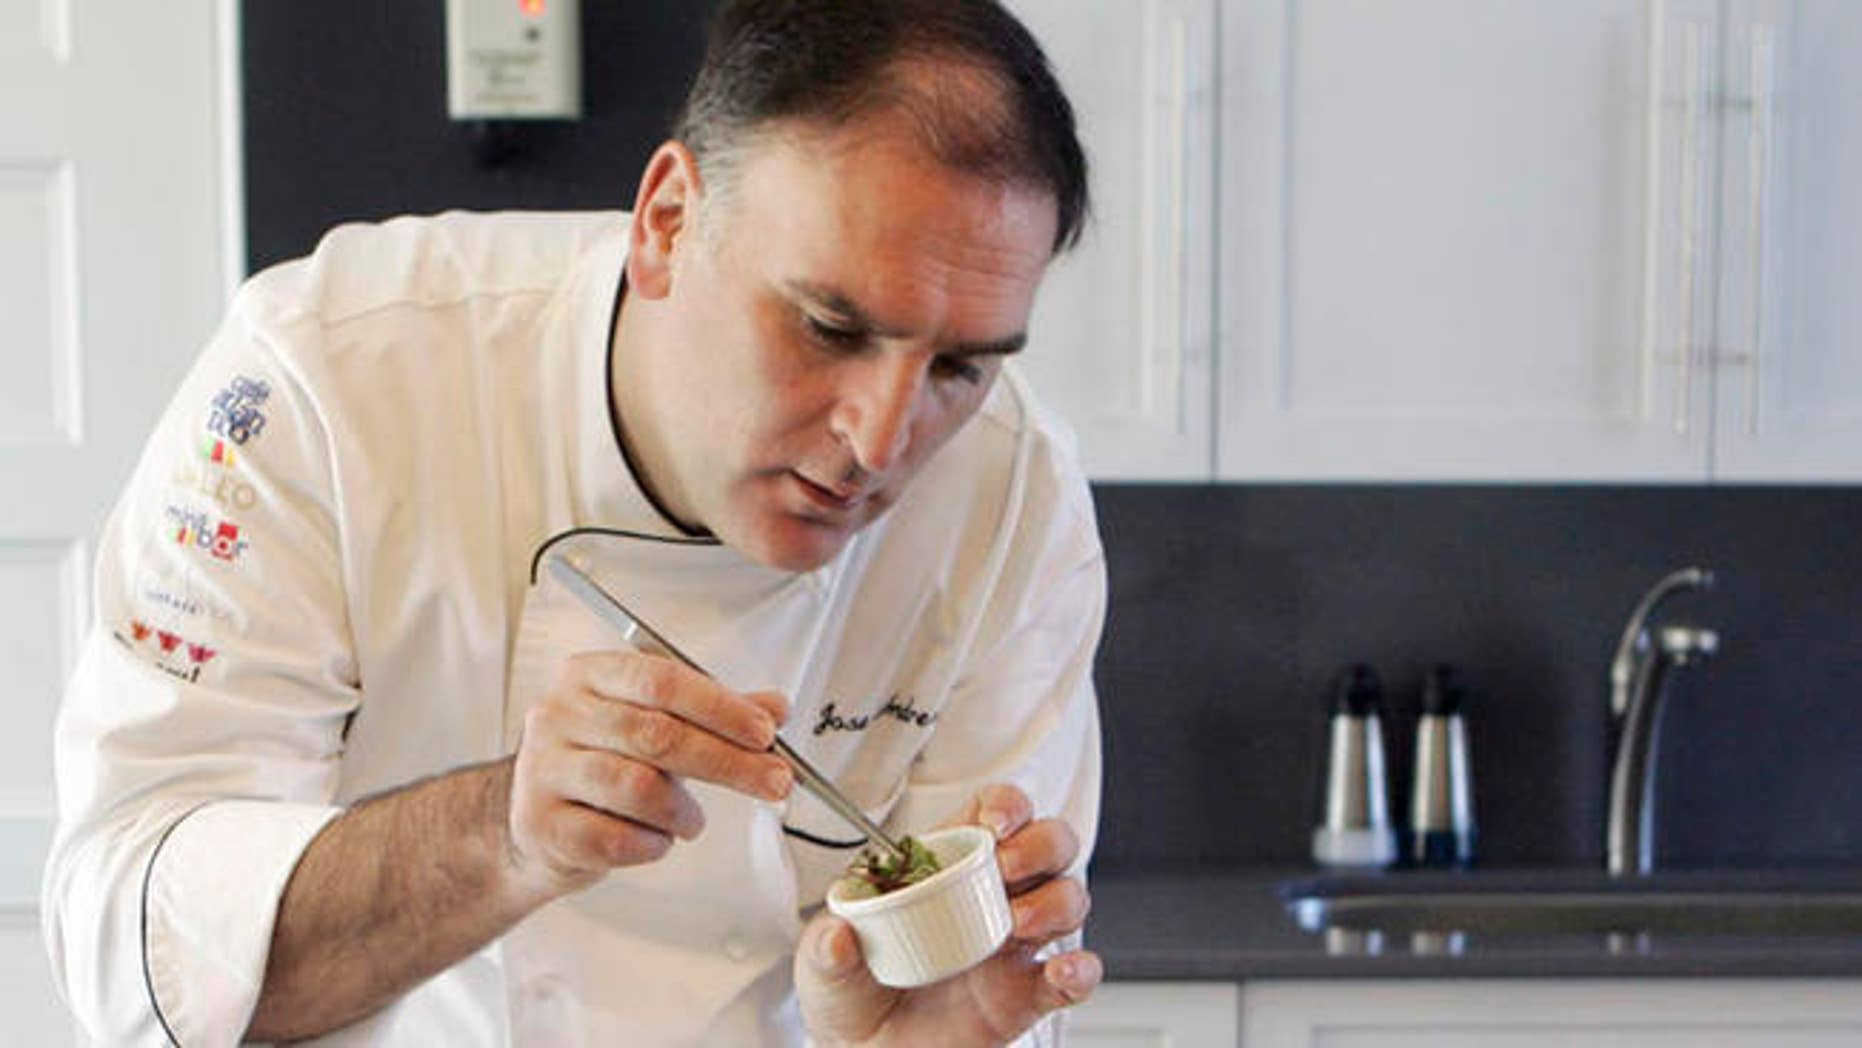 Jose Andres' ThinkFoodGroup is being sued by the Trump Organization.